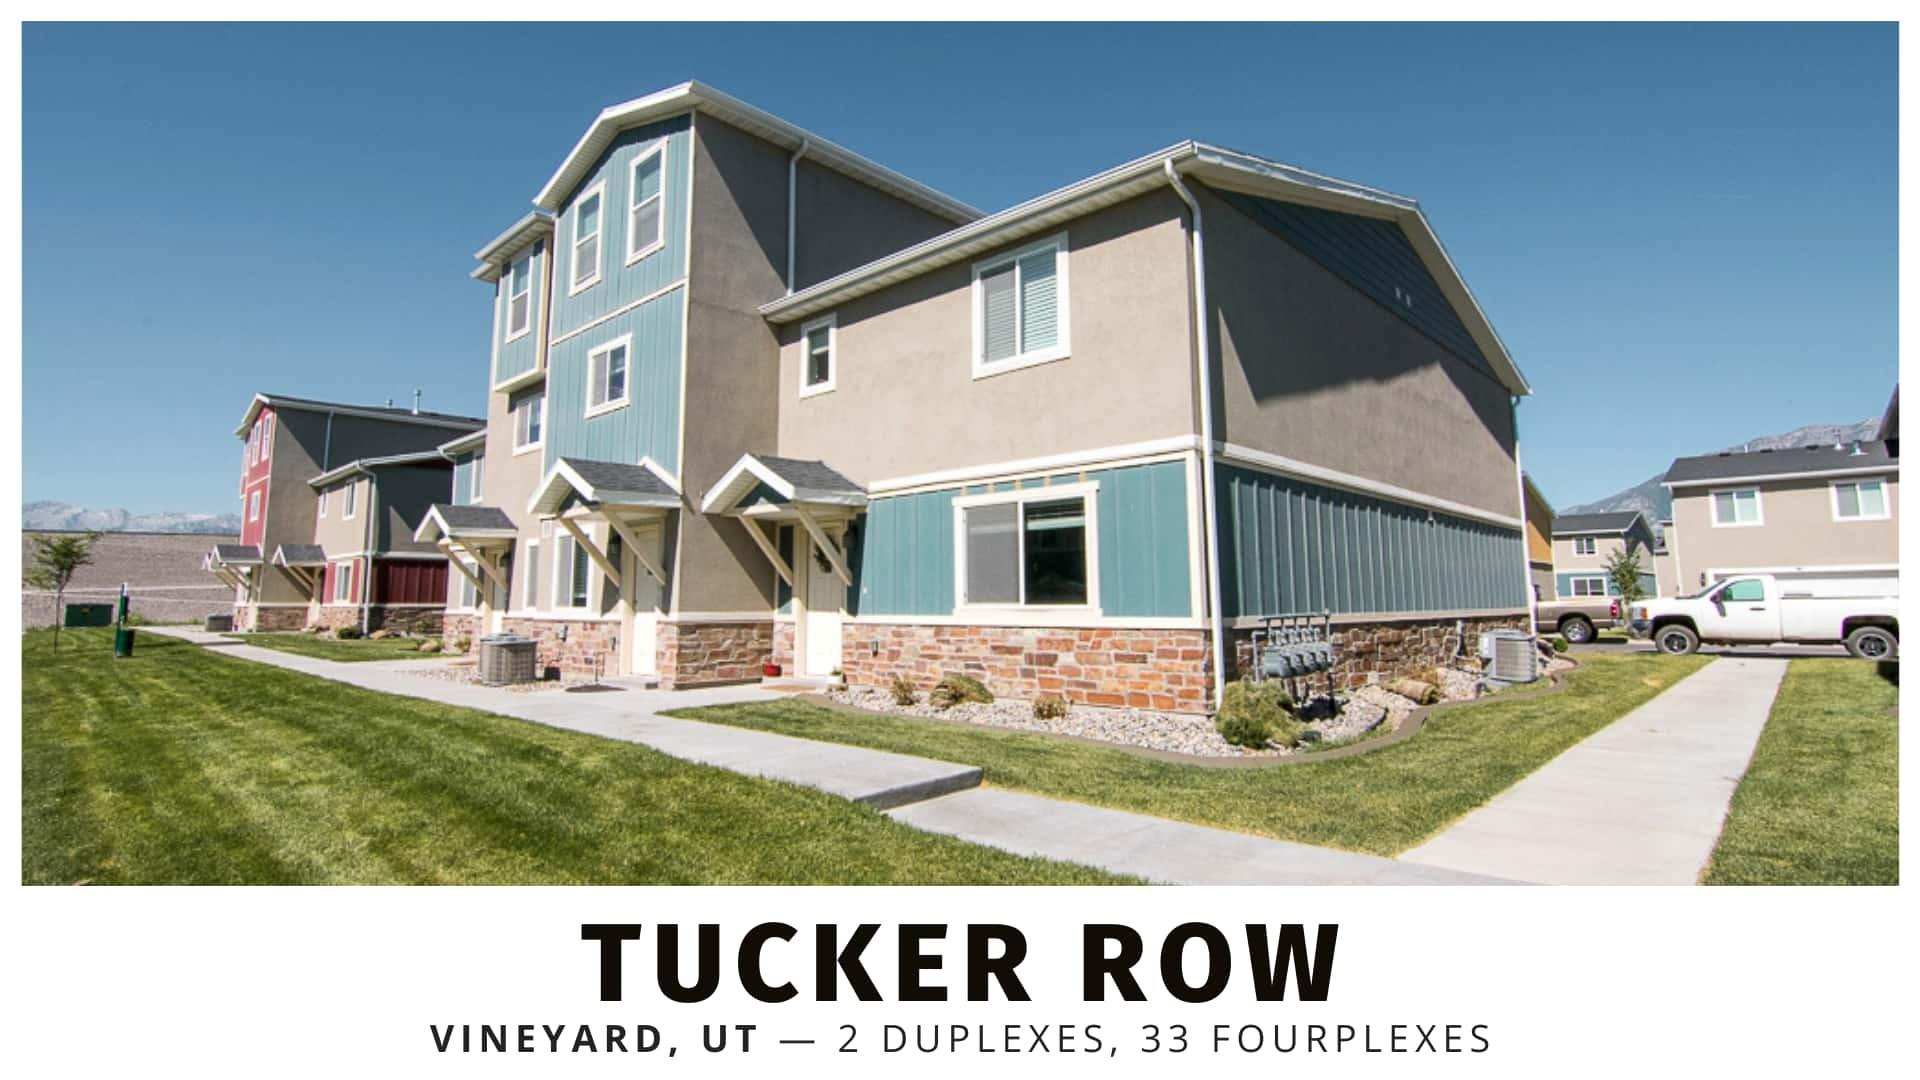 Tucker Row duplexes and fourplexes in Utah County